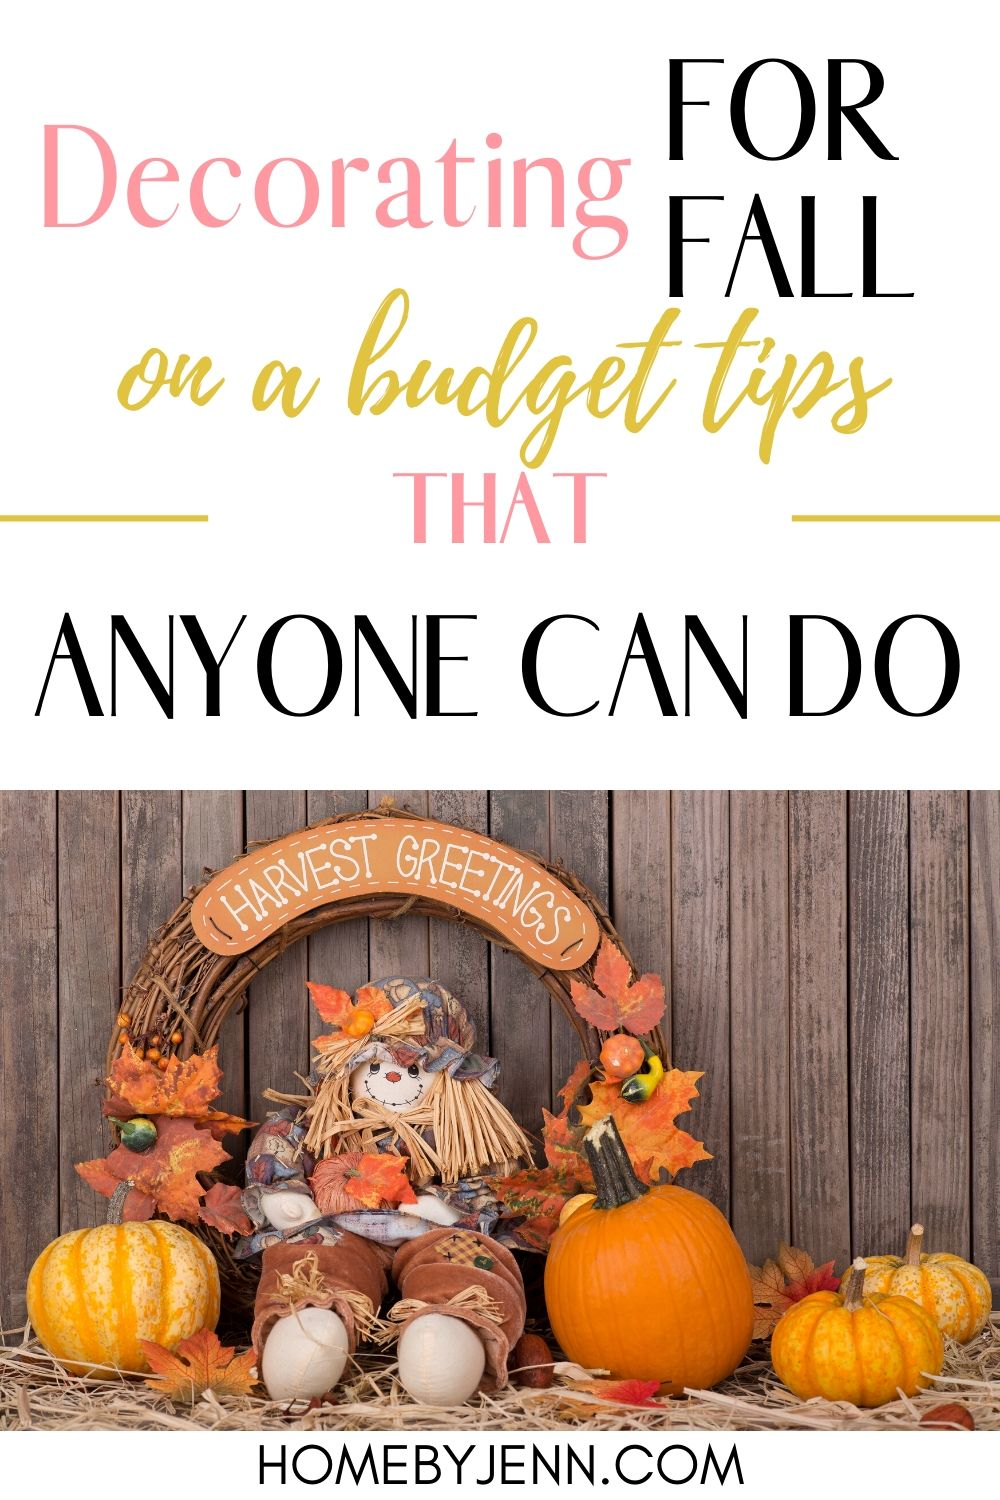 10 simple fall decorating ideas that will transform your home from summer to fall. These fall decor ideas are quick and easy to do. #fall #falldecor #decor #falldecoratingideas via @homebyjenn